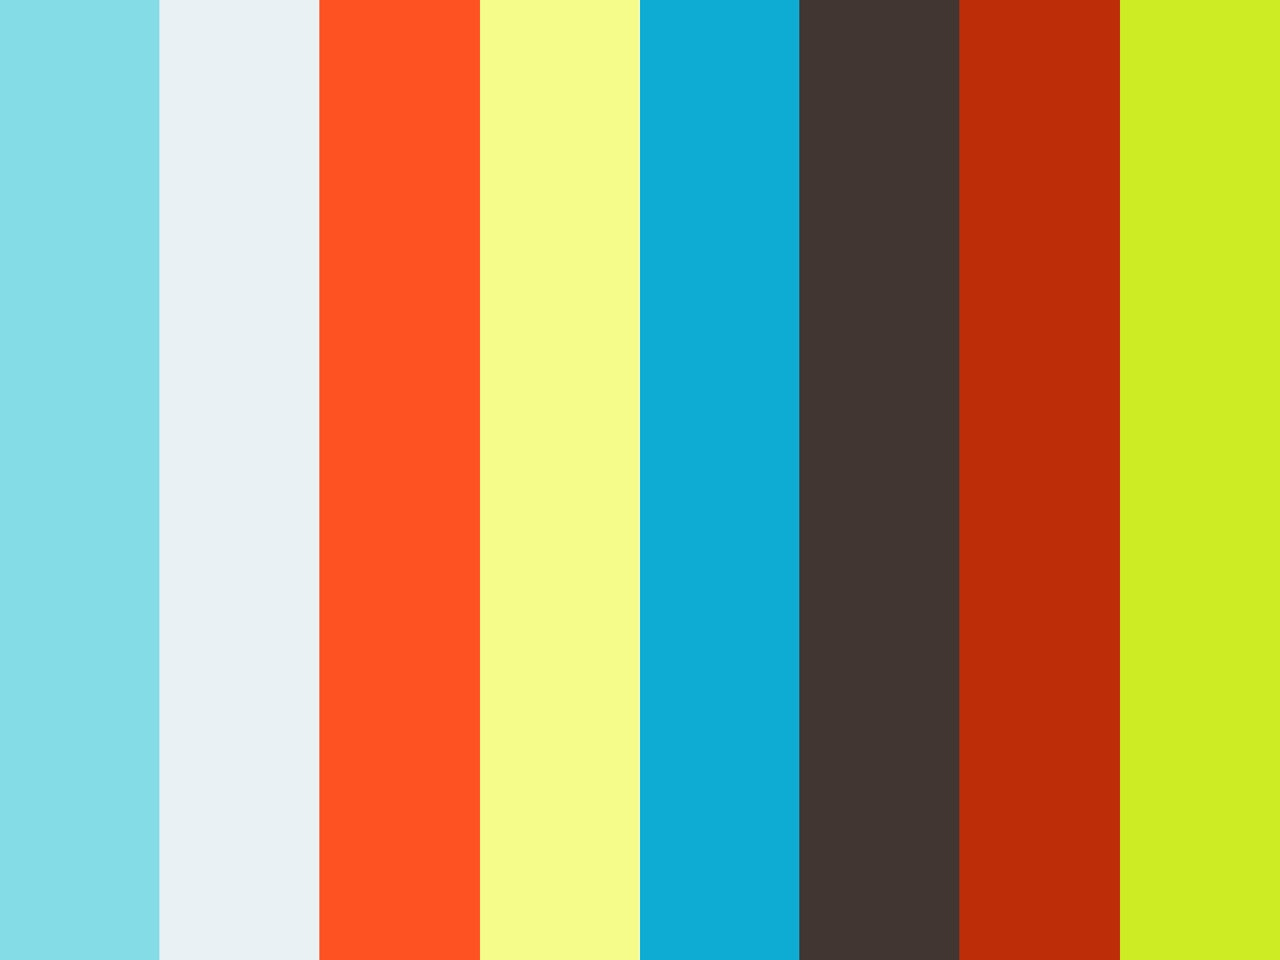 SD Talks Special Series on Data for Sustainable Development - Session#3 - Leveraging (Mobile) Data to Predict and Prevent Crime